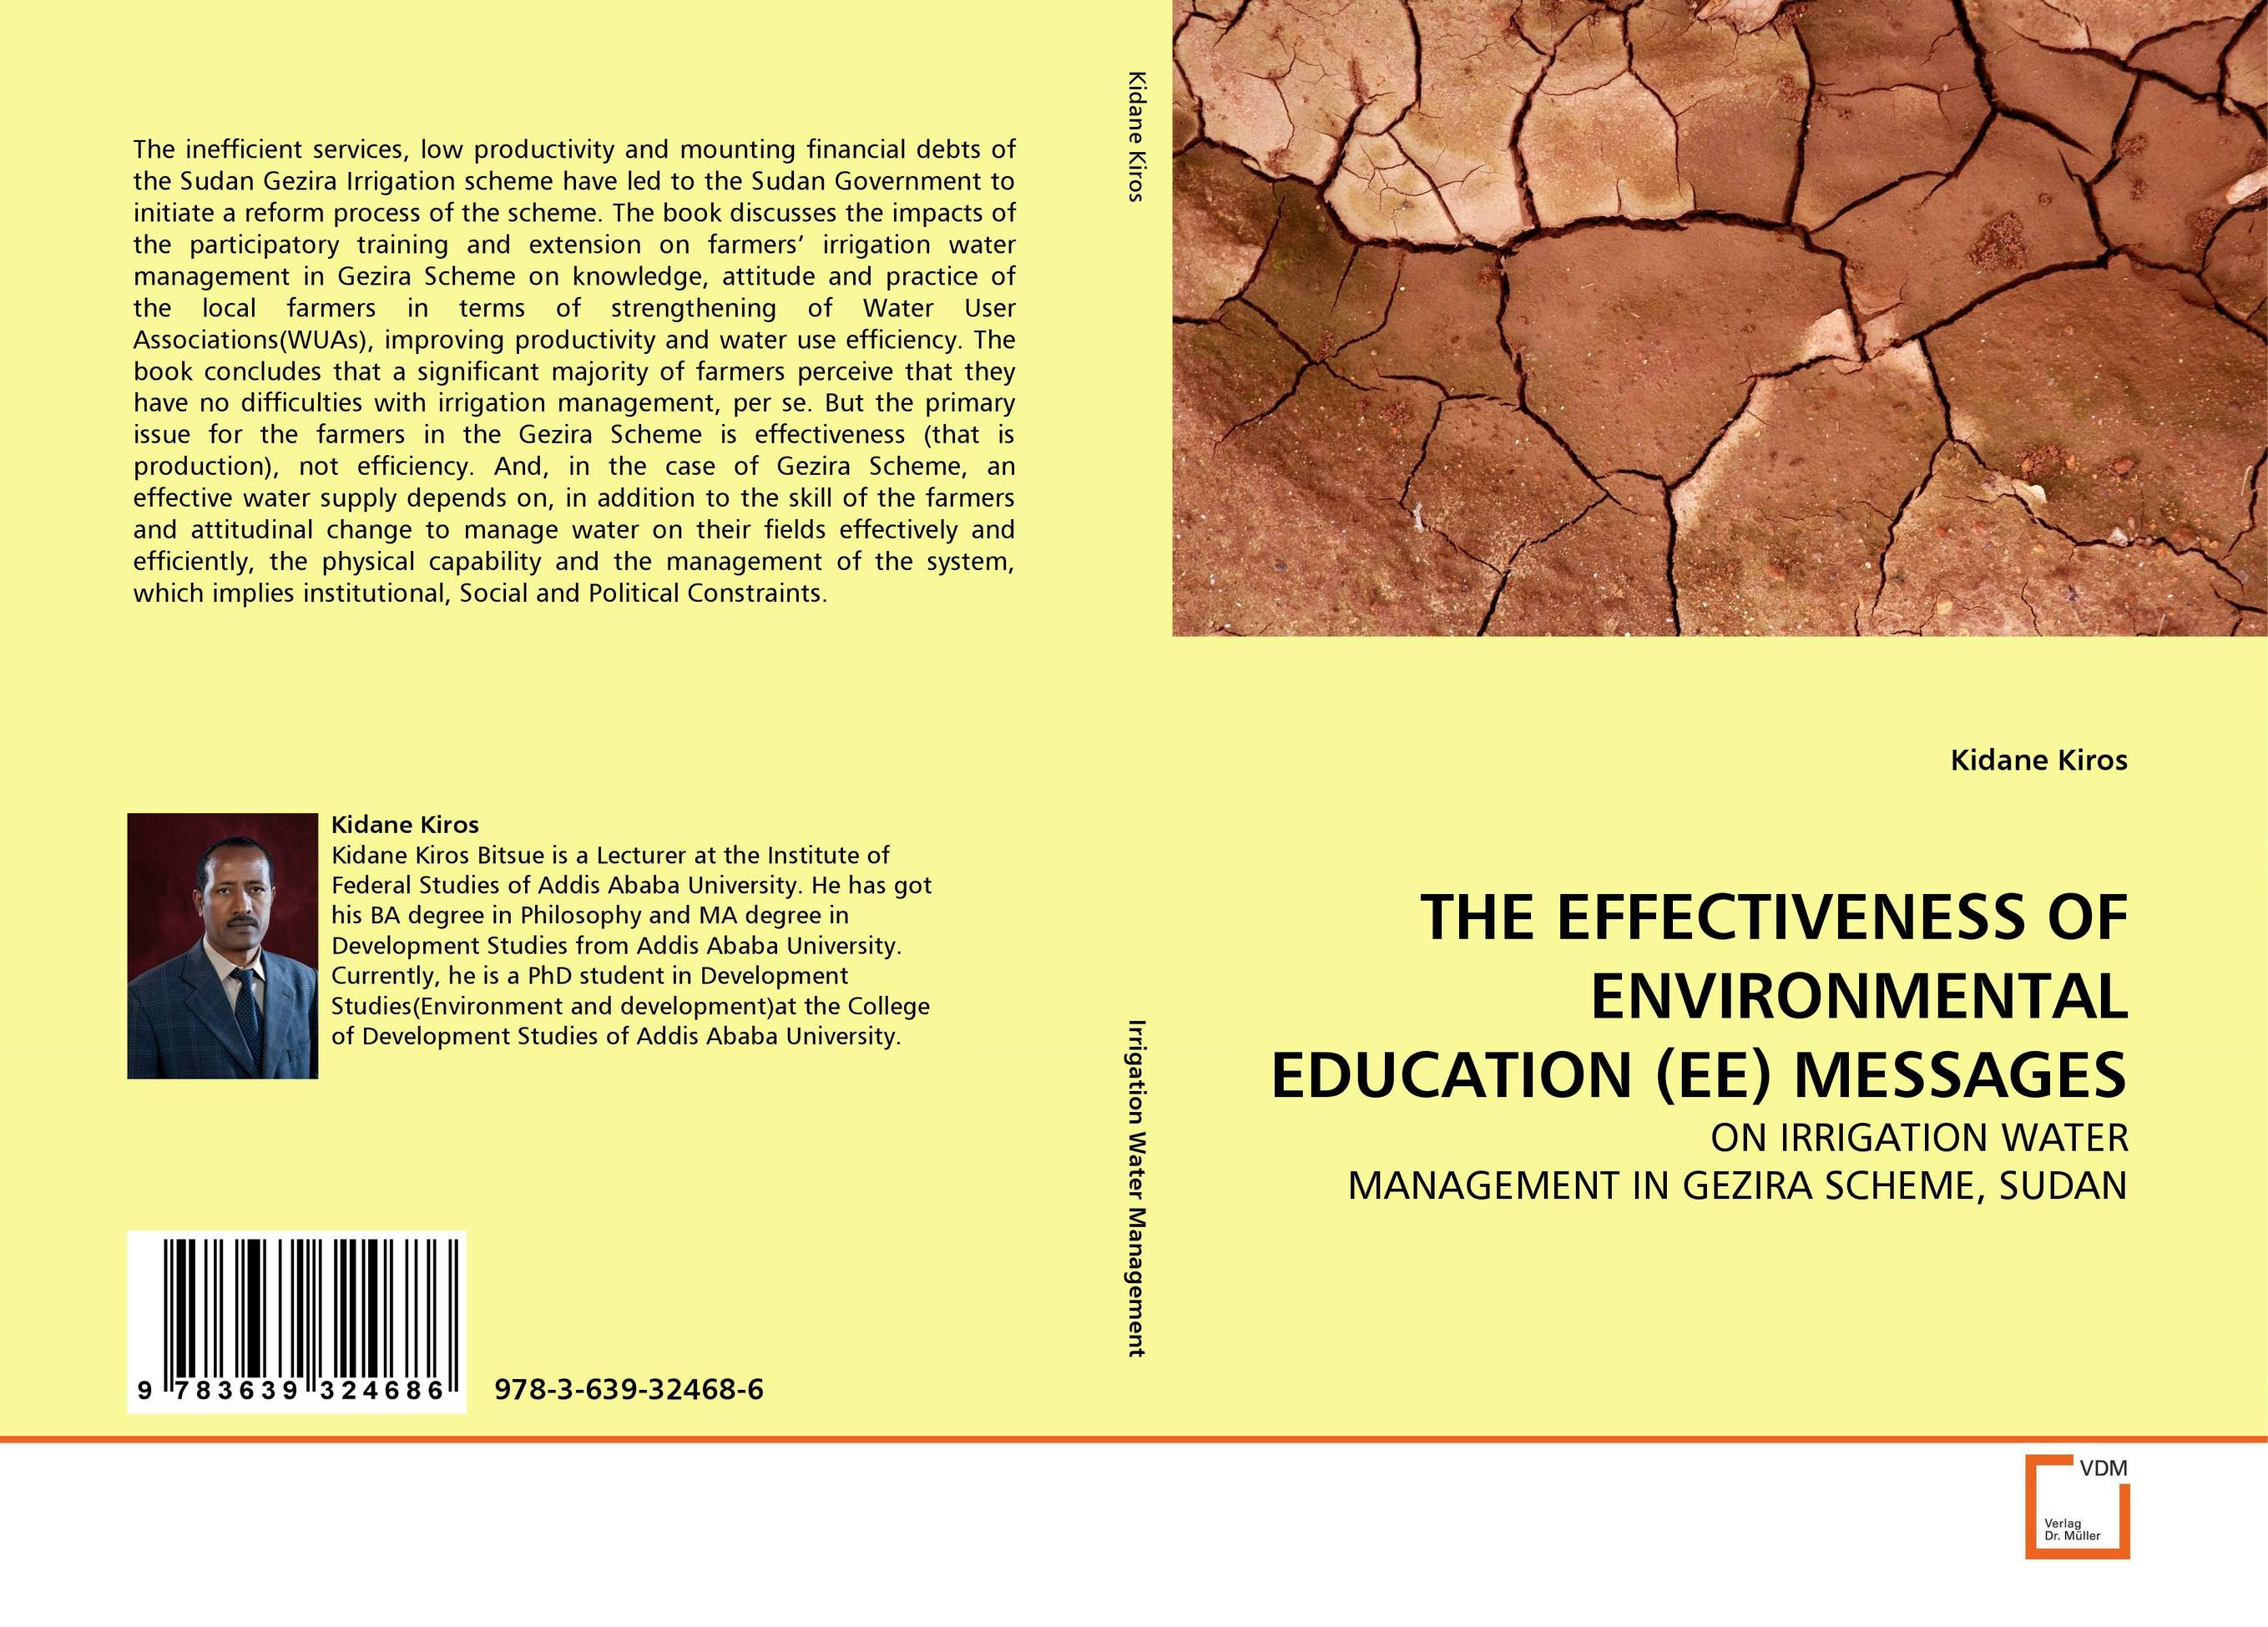 THE EFFECTIVENESS OF ENVIRONMENTAL EDUCATION (EE) MESSAGES farmers attitude